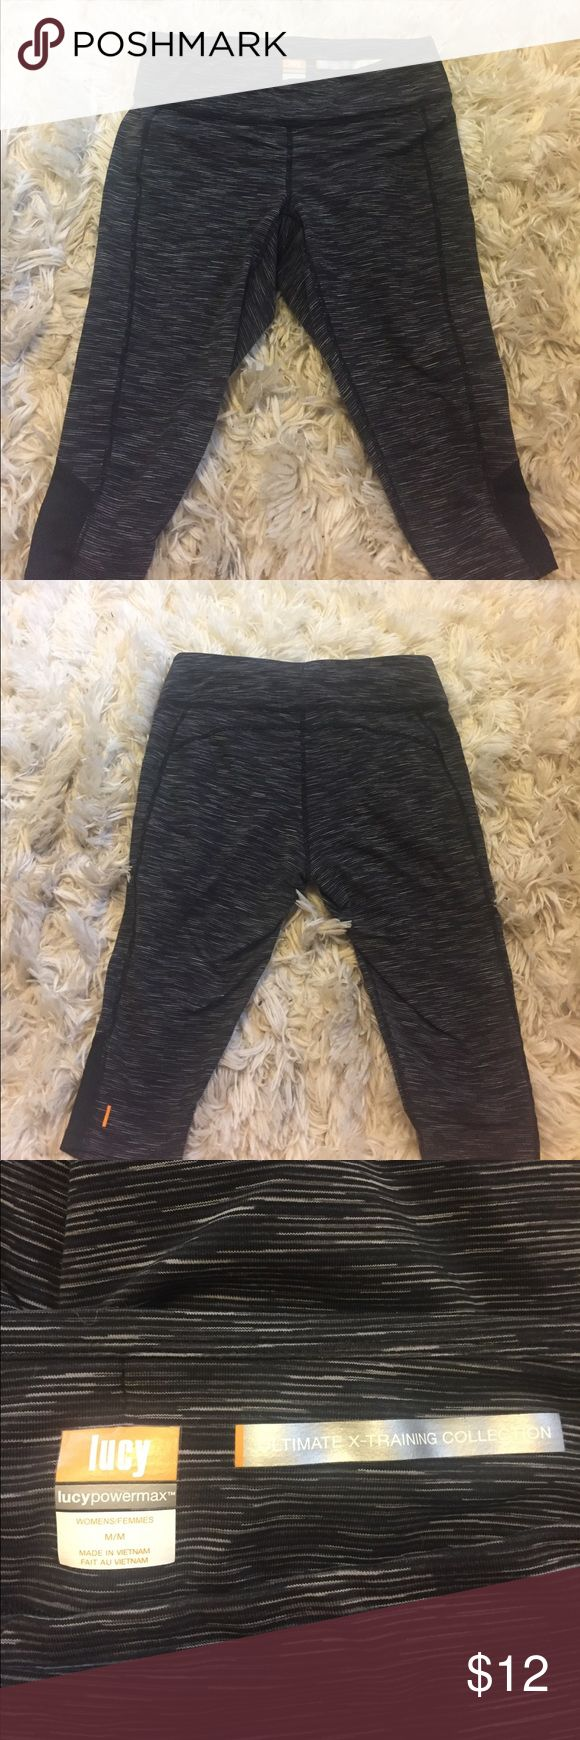 ~Low Price~ Lucy Workout legging Capris Fabulous Lucy workout legging capris. Ultimate x-training. In great condition. Size medium. Lucy Pants Capris